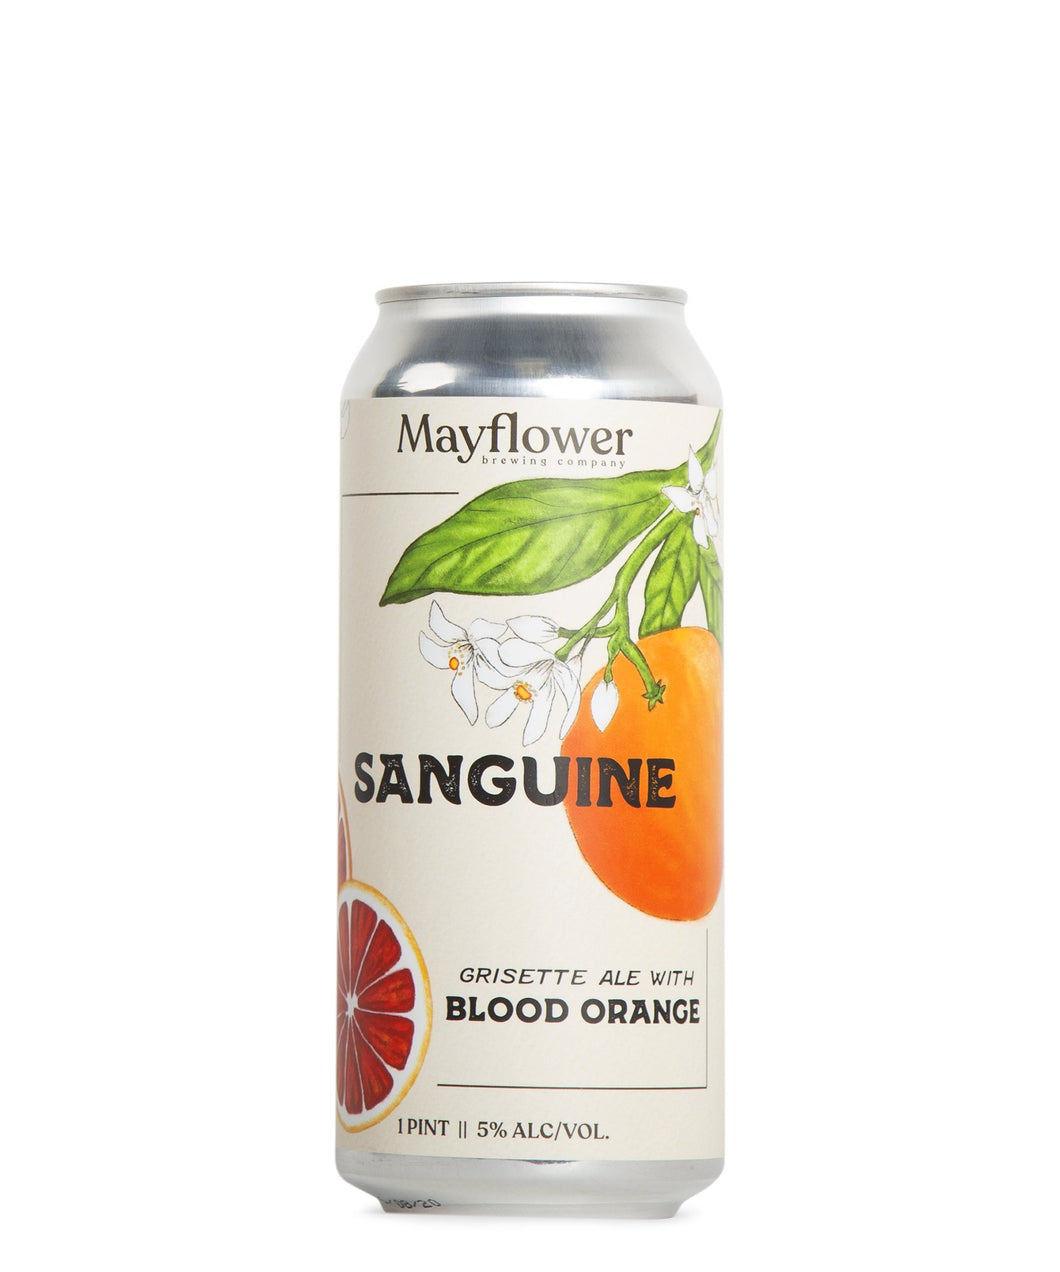 Sanguine - Mayflower Brewing Company Delivered By TapRm